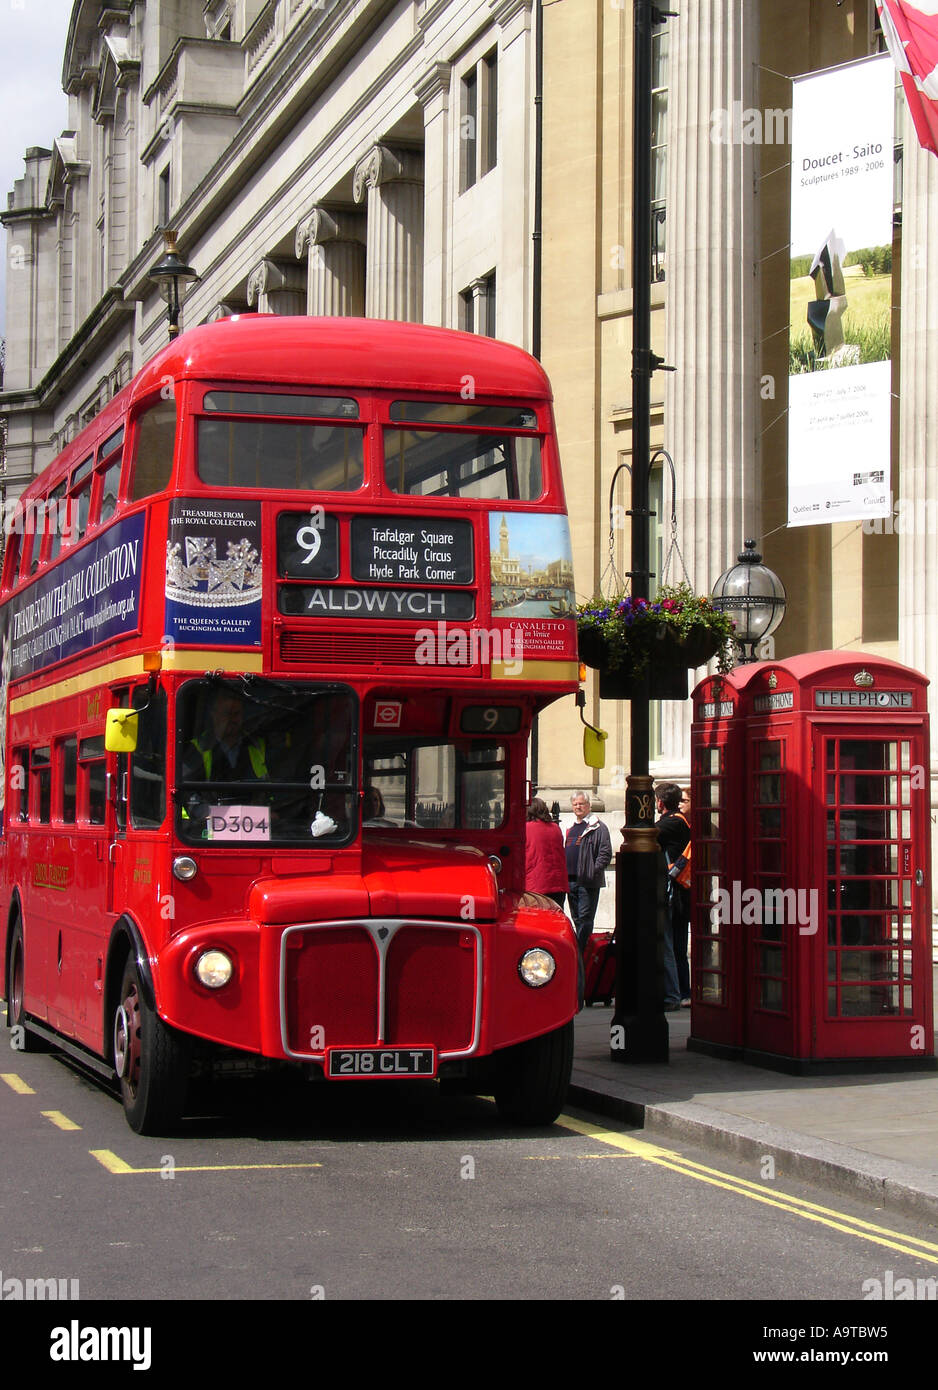 A London AEC Routemaster, RML 2473 Double decker bus on route 9, downtown London England UK - Stock Image